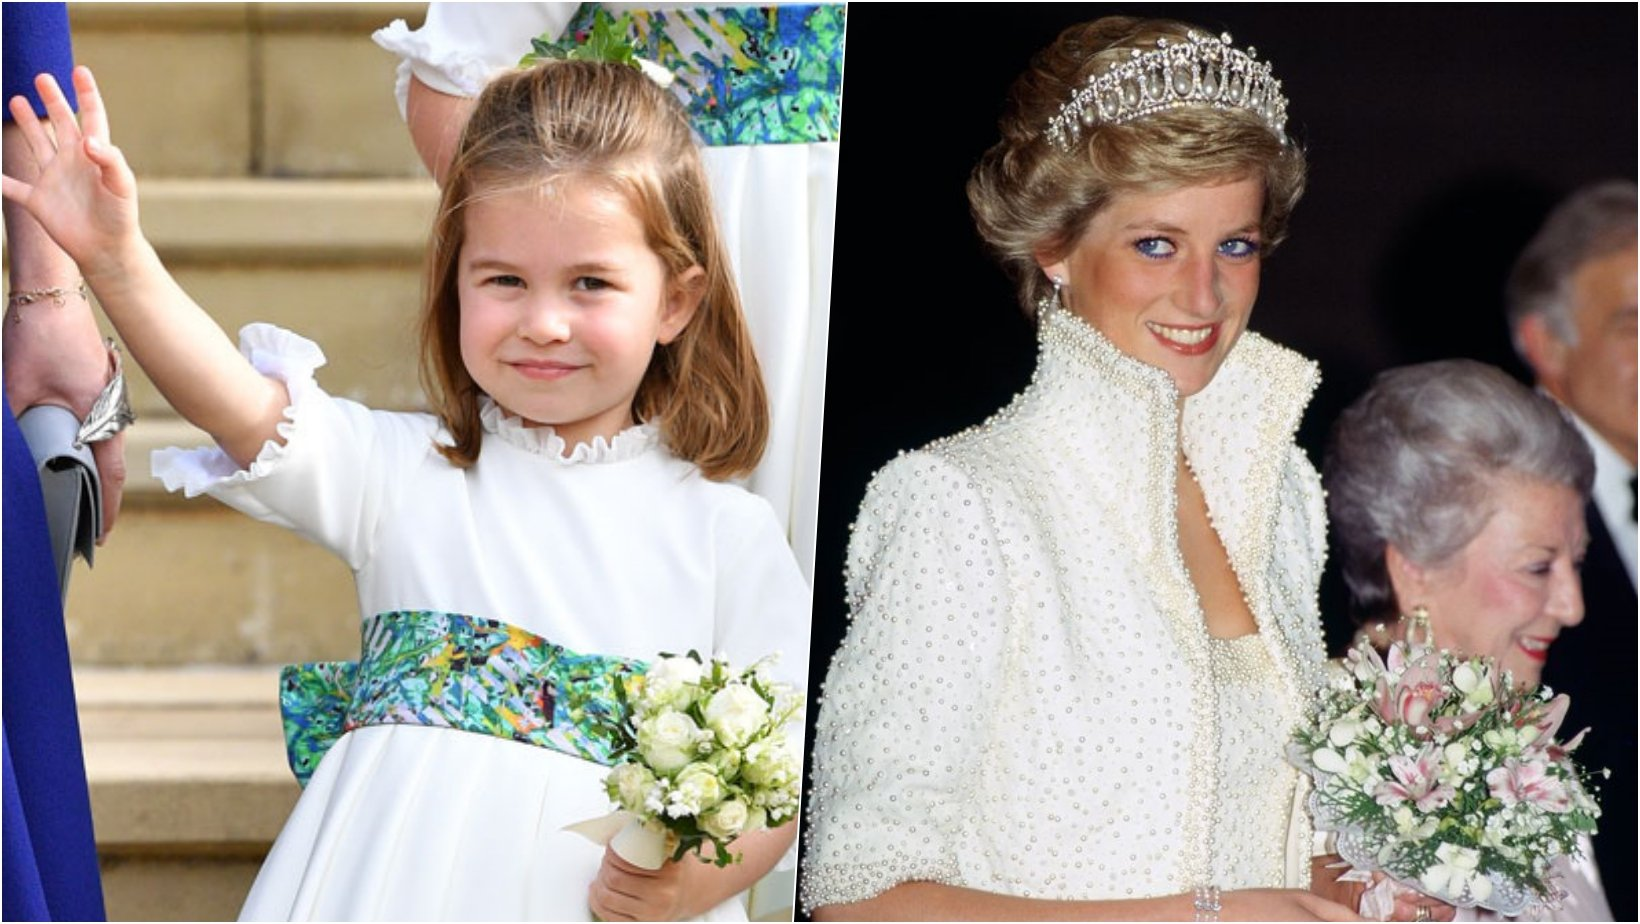 6 facebook cover 28.jpg?resize=574,582 - Princess Diana's PRICELESS Wedding Heirloom Is Gifted To Princess Charlotte Instead Of Meghan And Prince Harry's Daughter, Lili